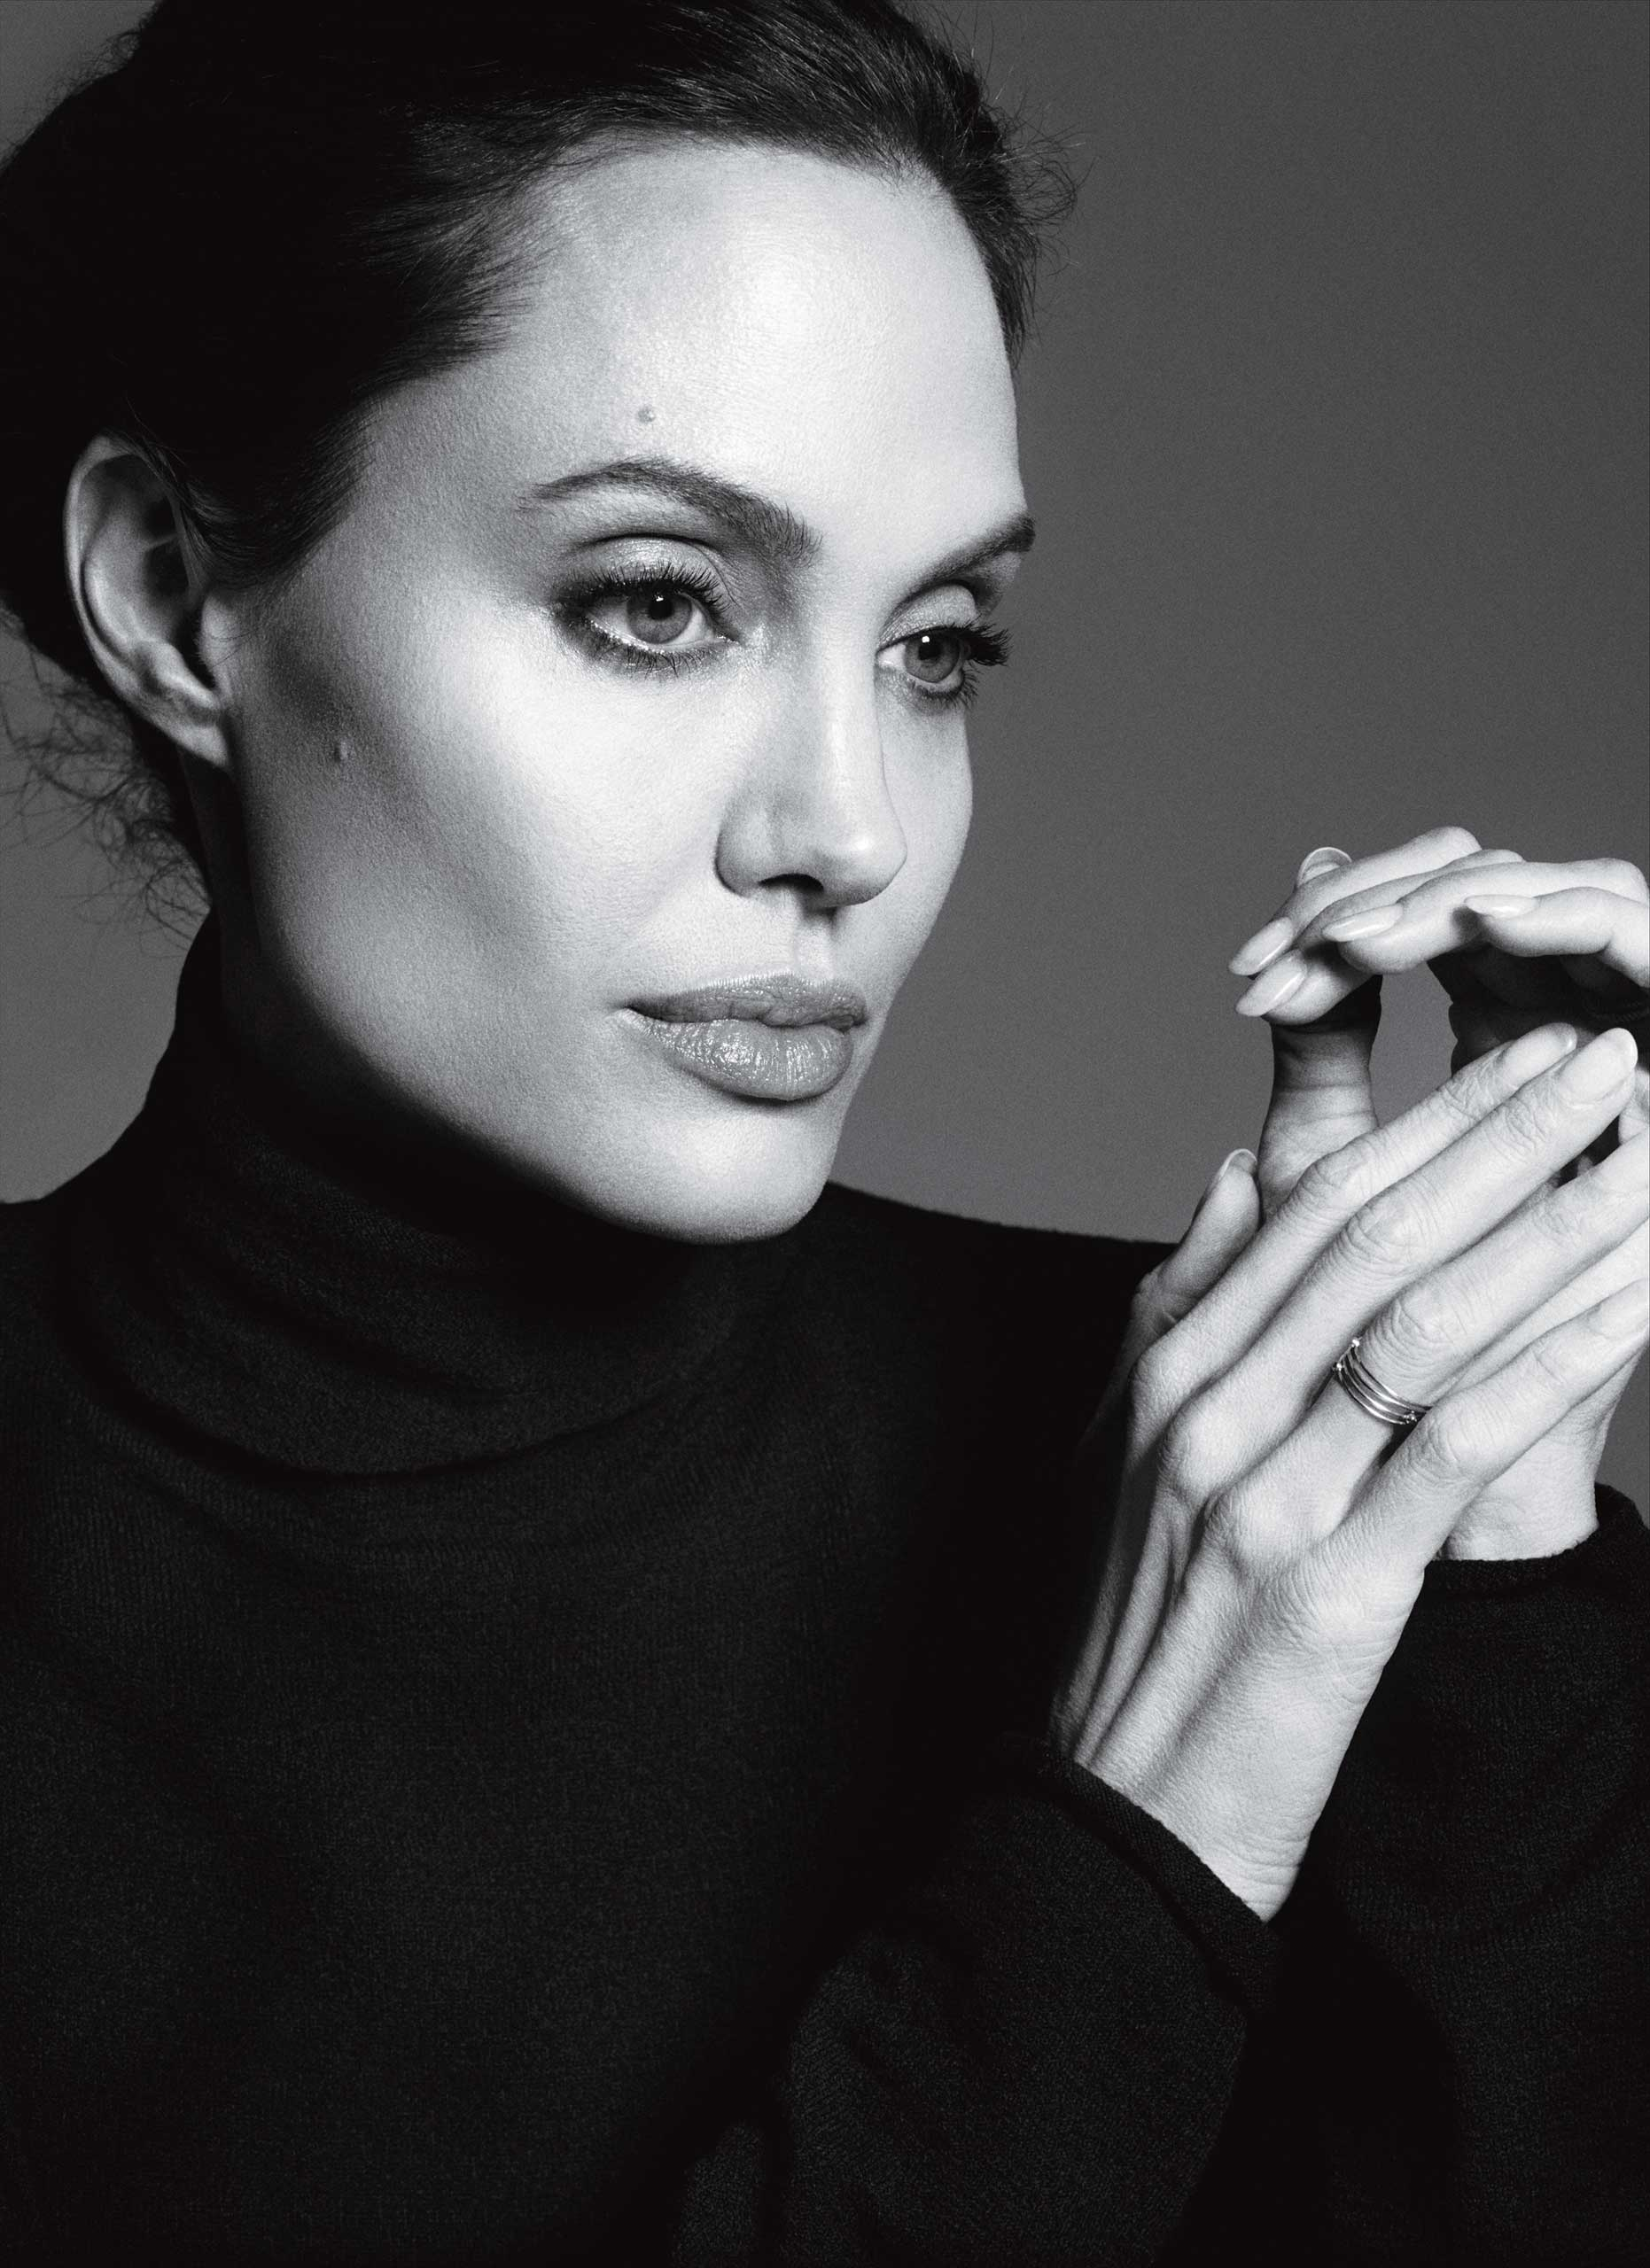 Angelina Jolie. From  The Lady and The Scamp. Angelina Jolie Finds Her Equal.  Dec. 1 / Dec. 8, 2014 issue.